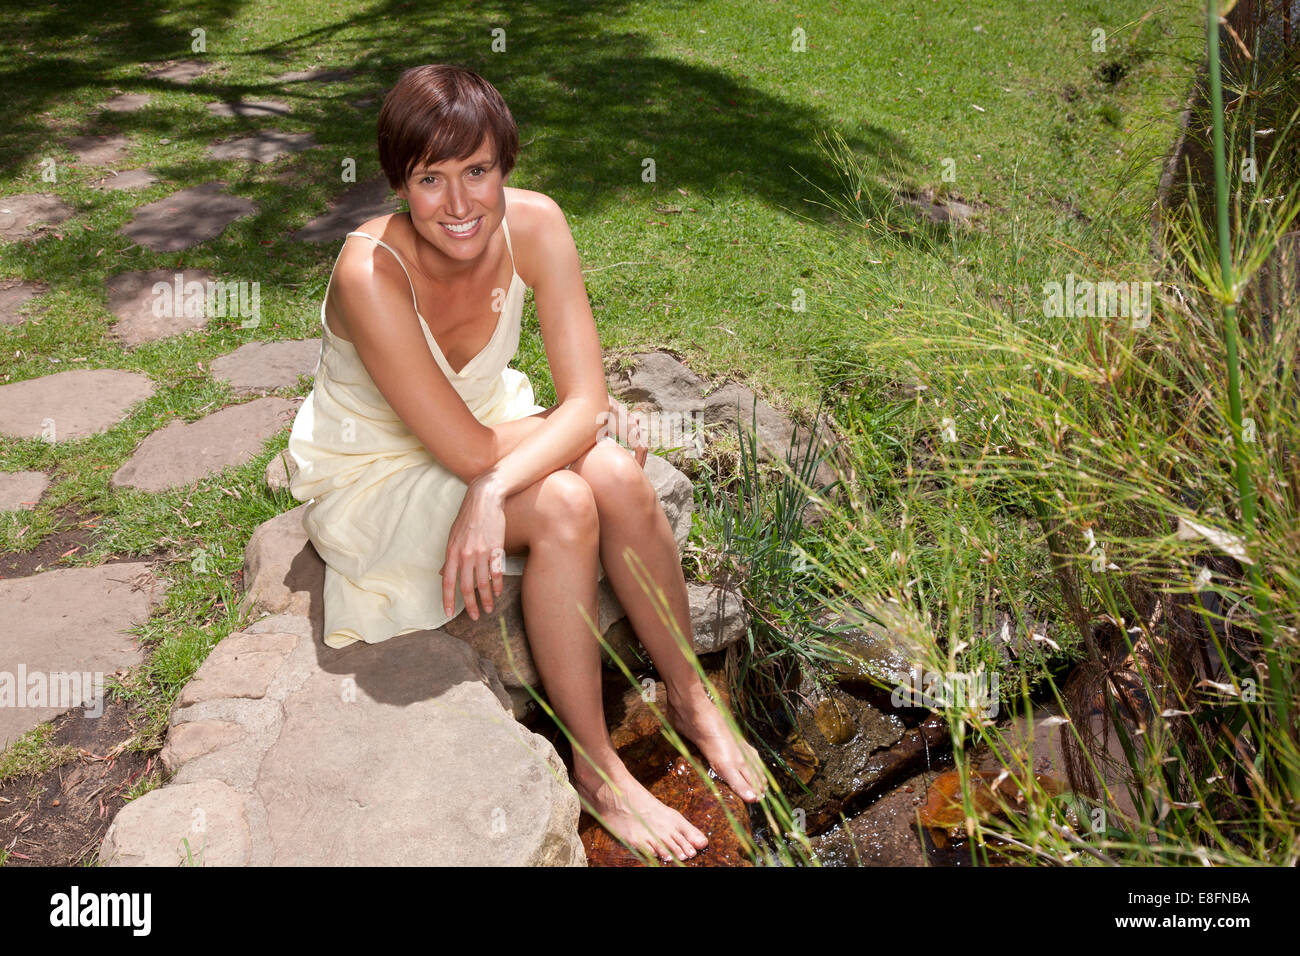 Woman smiling and sitting with feet in stream - Stock Image